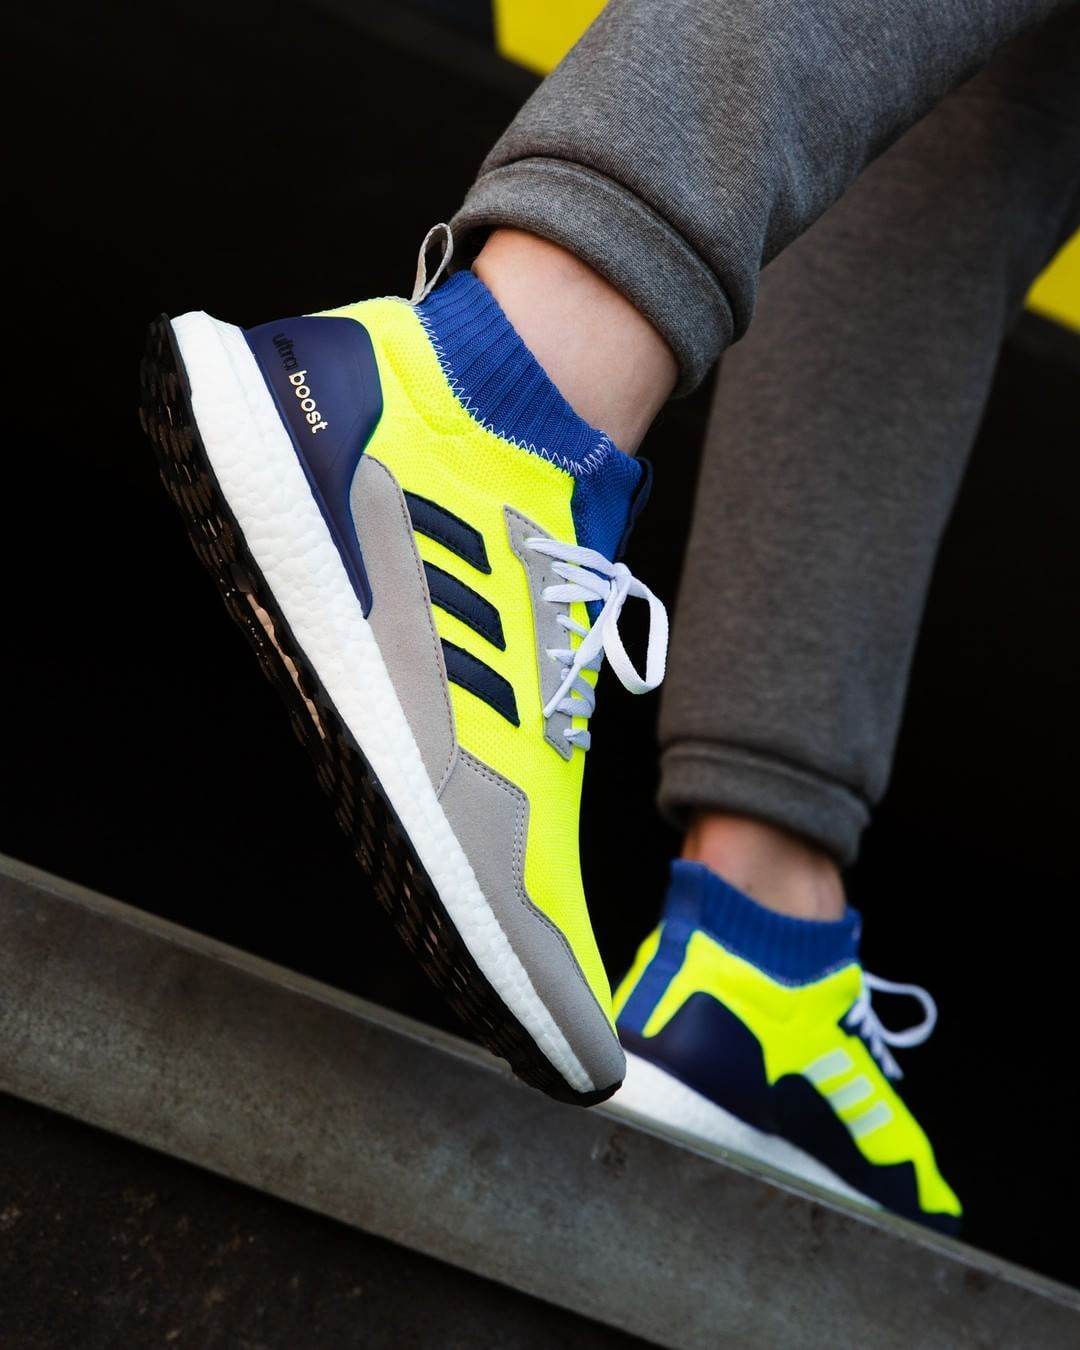 timeless design f3a69 8083c Adidas UltraBOOST MidProto Yellow / Grey / Blue | Things to ...